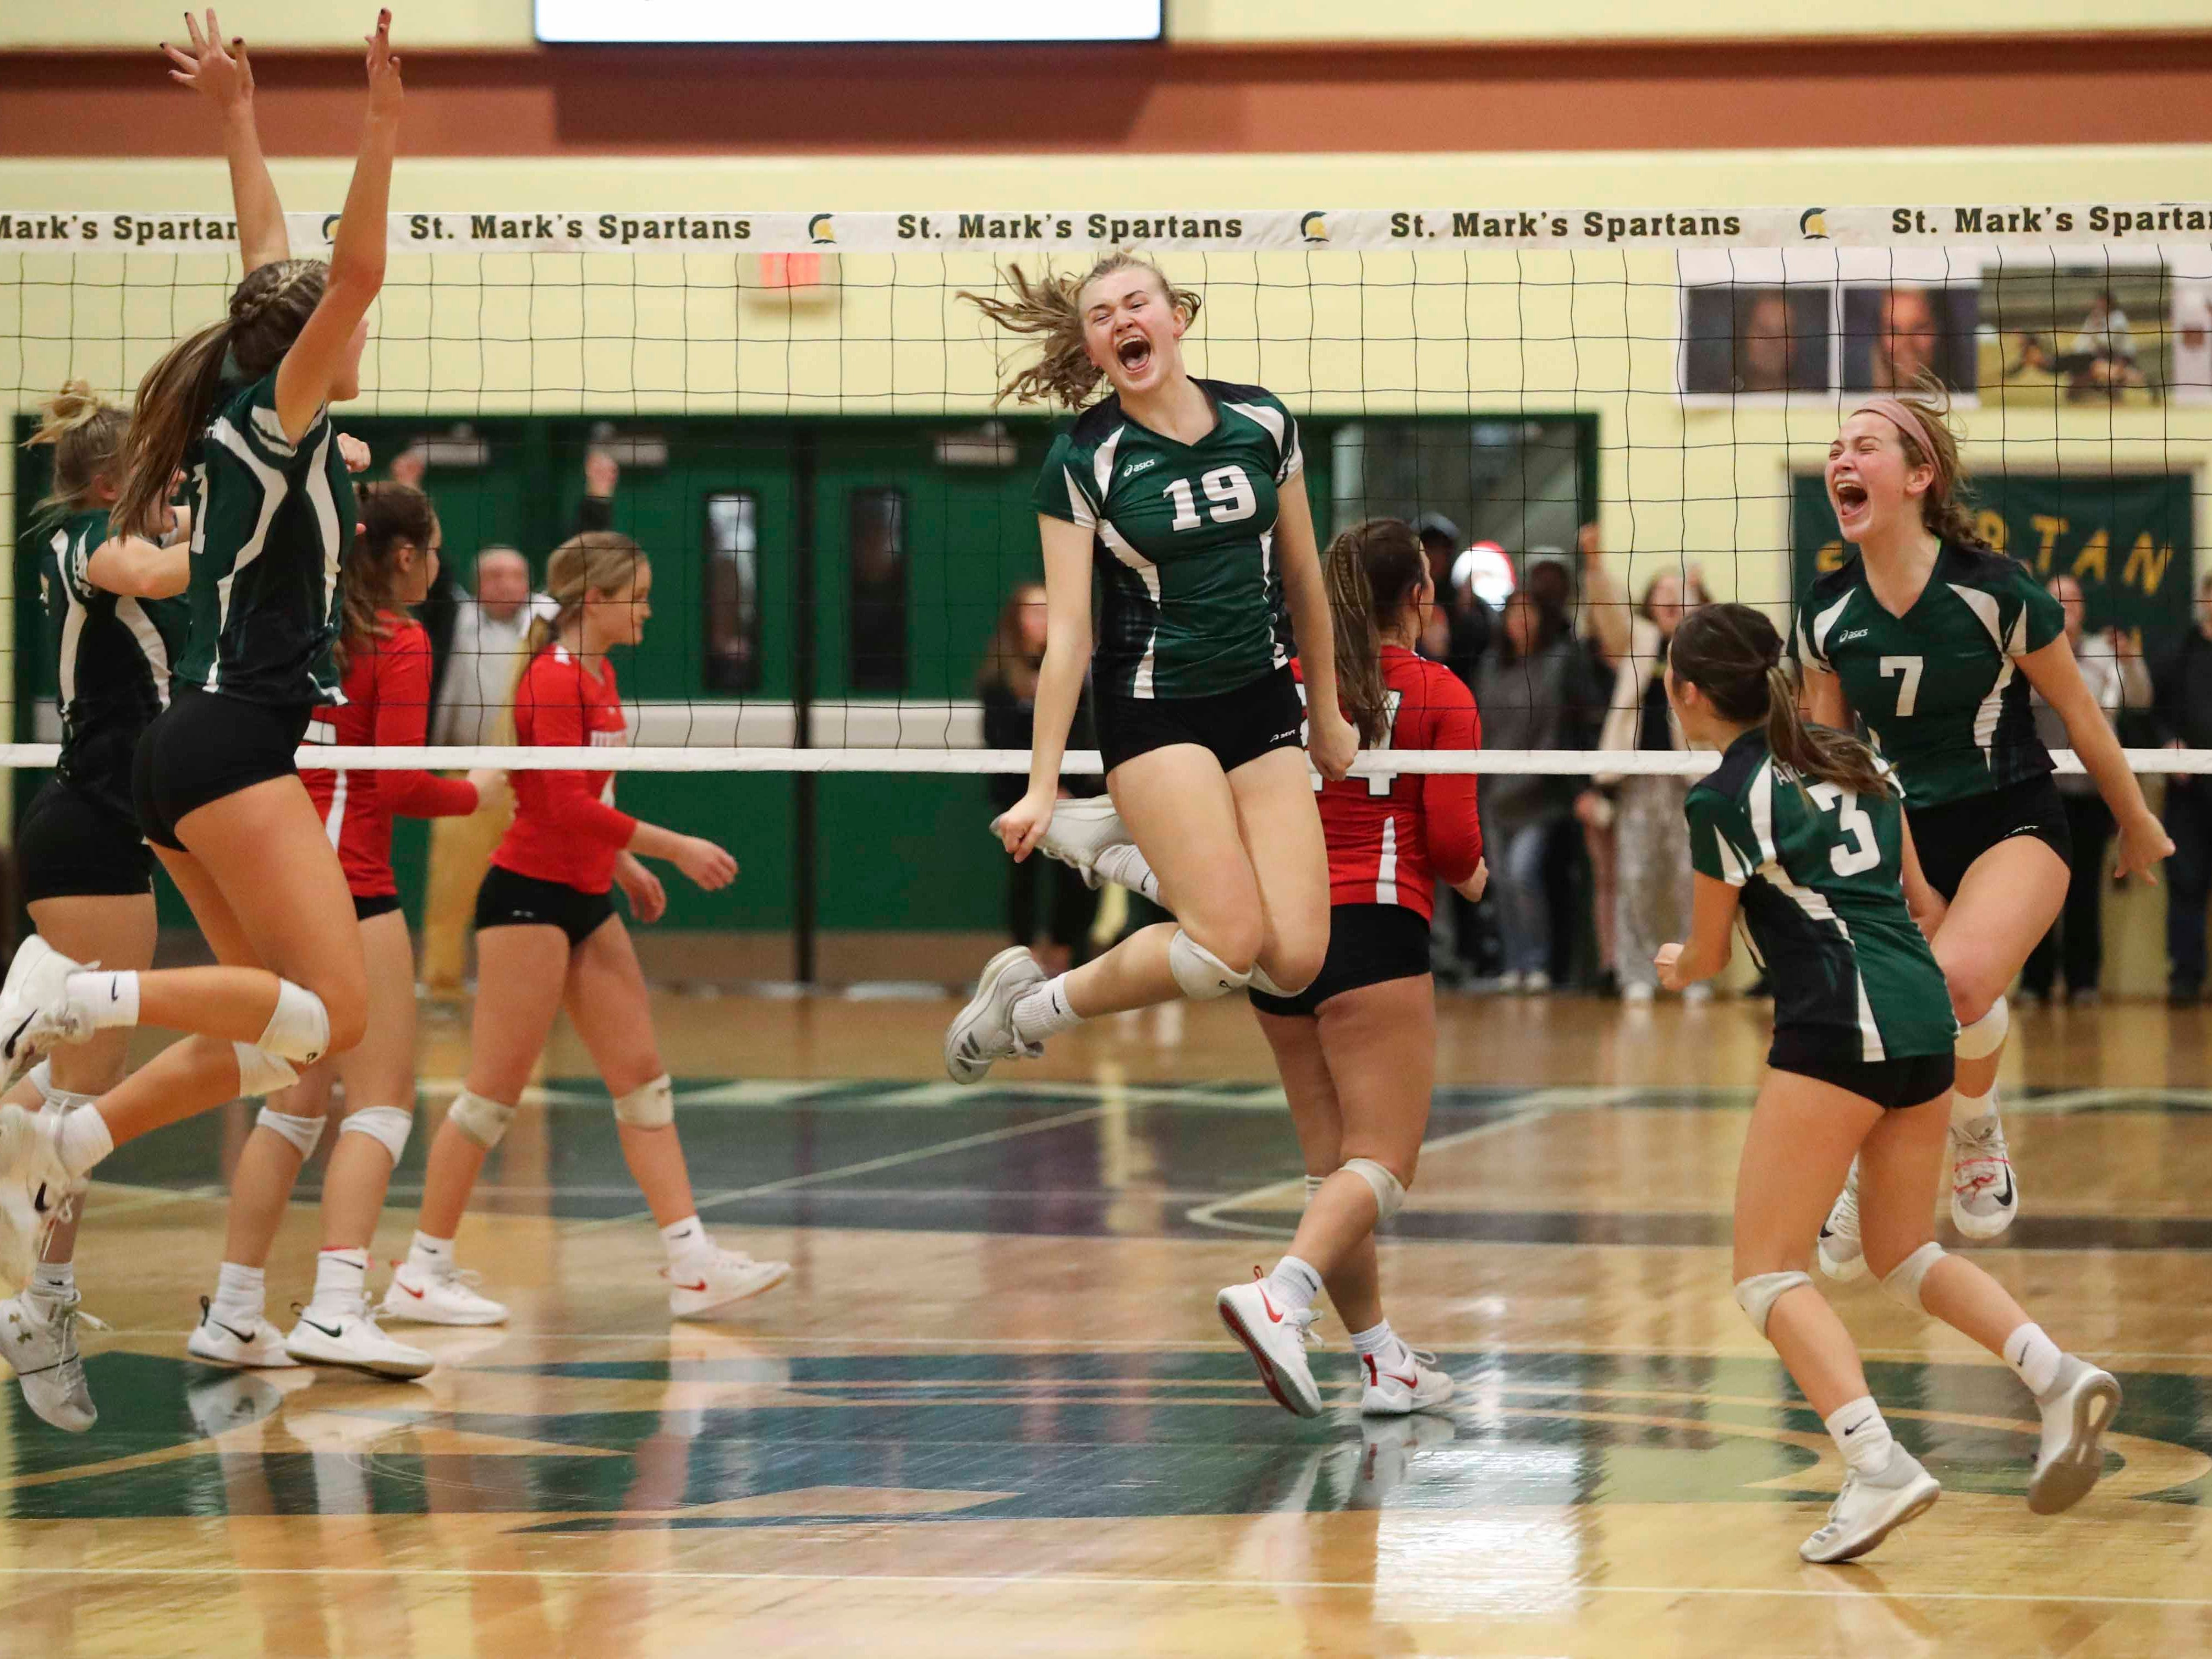 Archmere's Lauren Edmiston (19) and the rest of the Auks react after the final point as Archmere advances to Monday's final in the DIAA state tournament Thursday at St. Mark's High School.